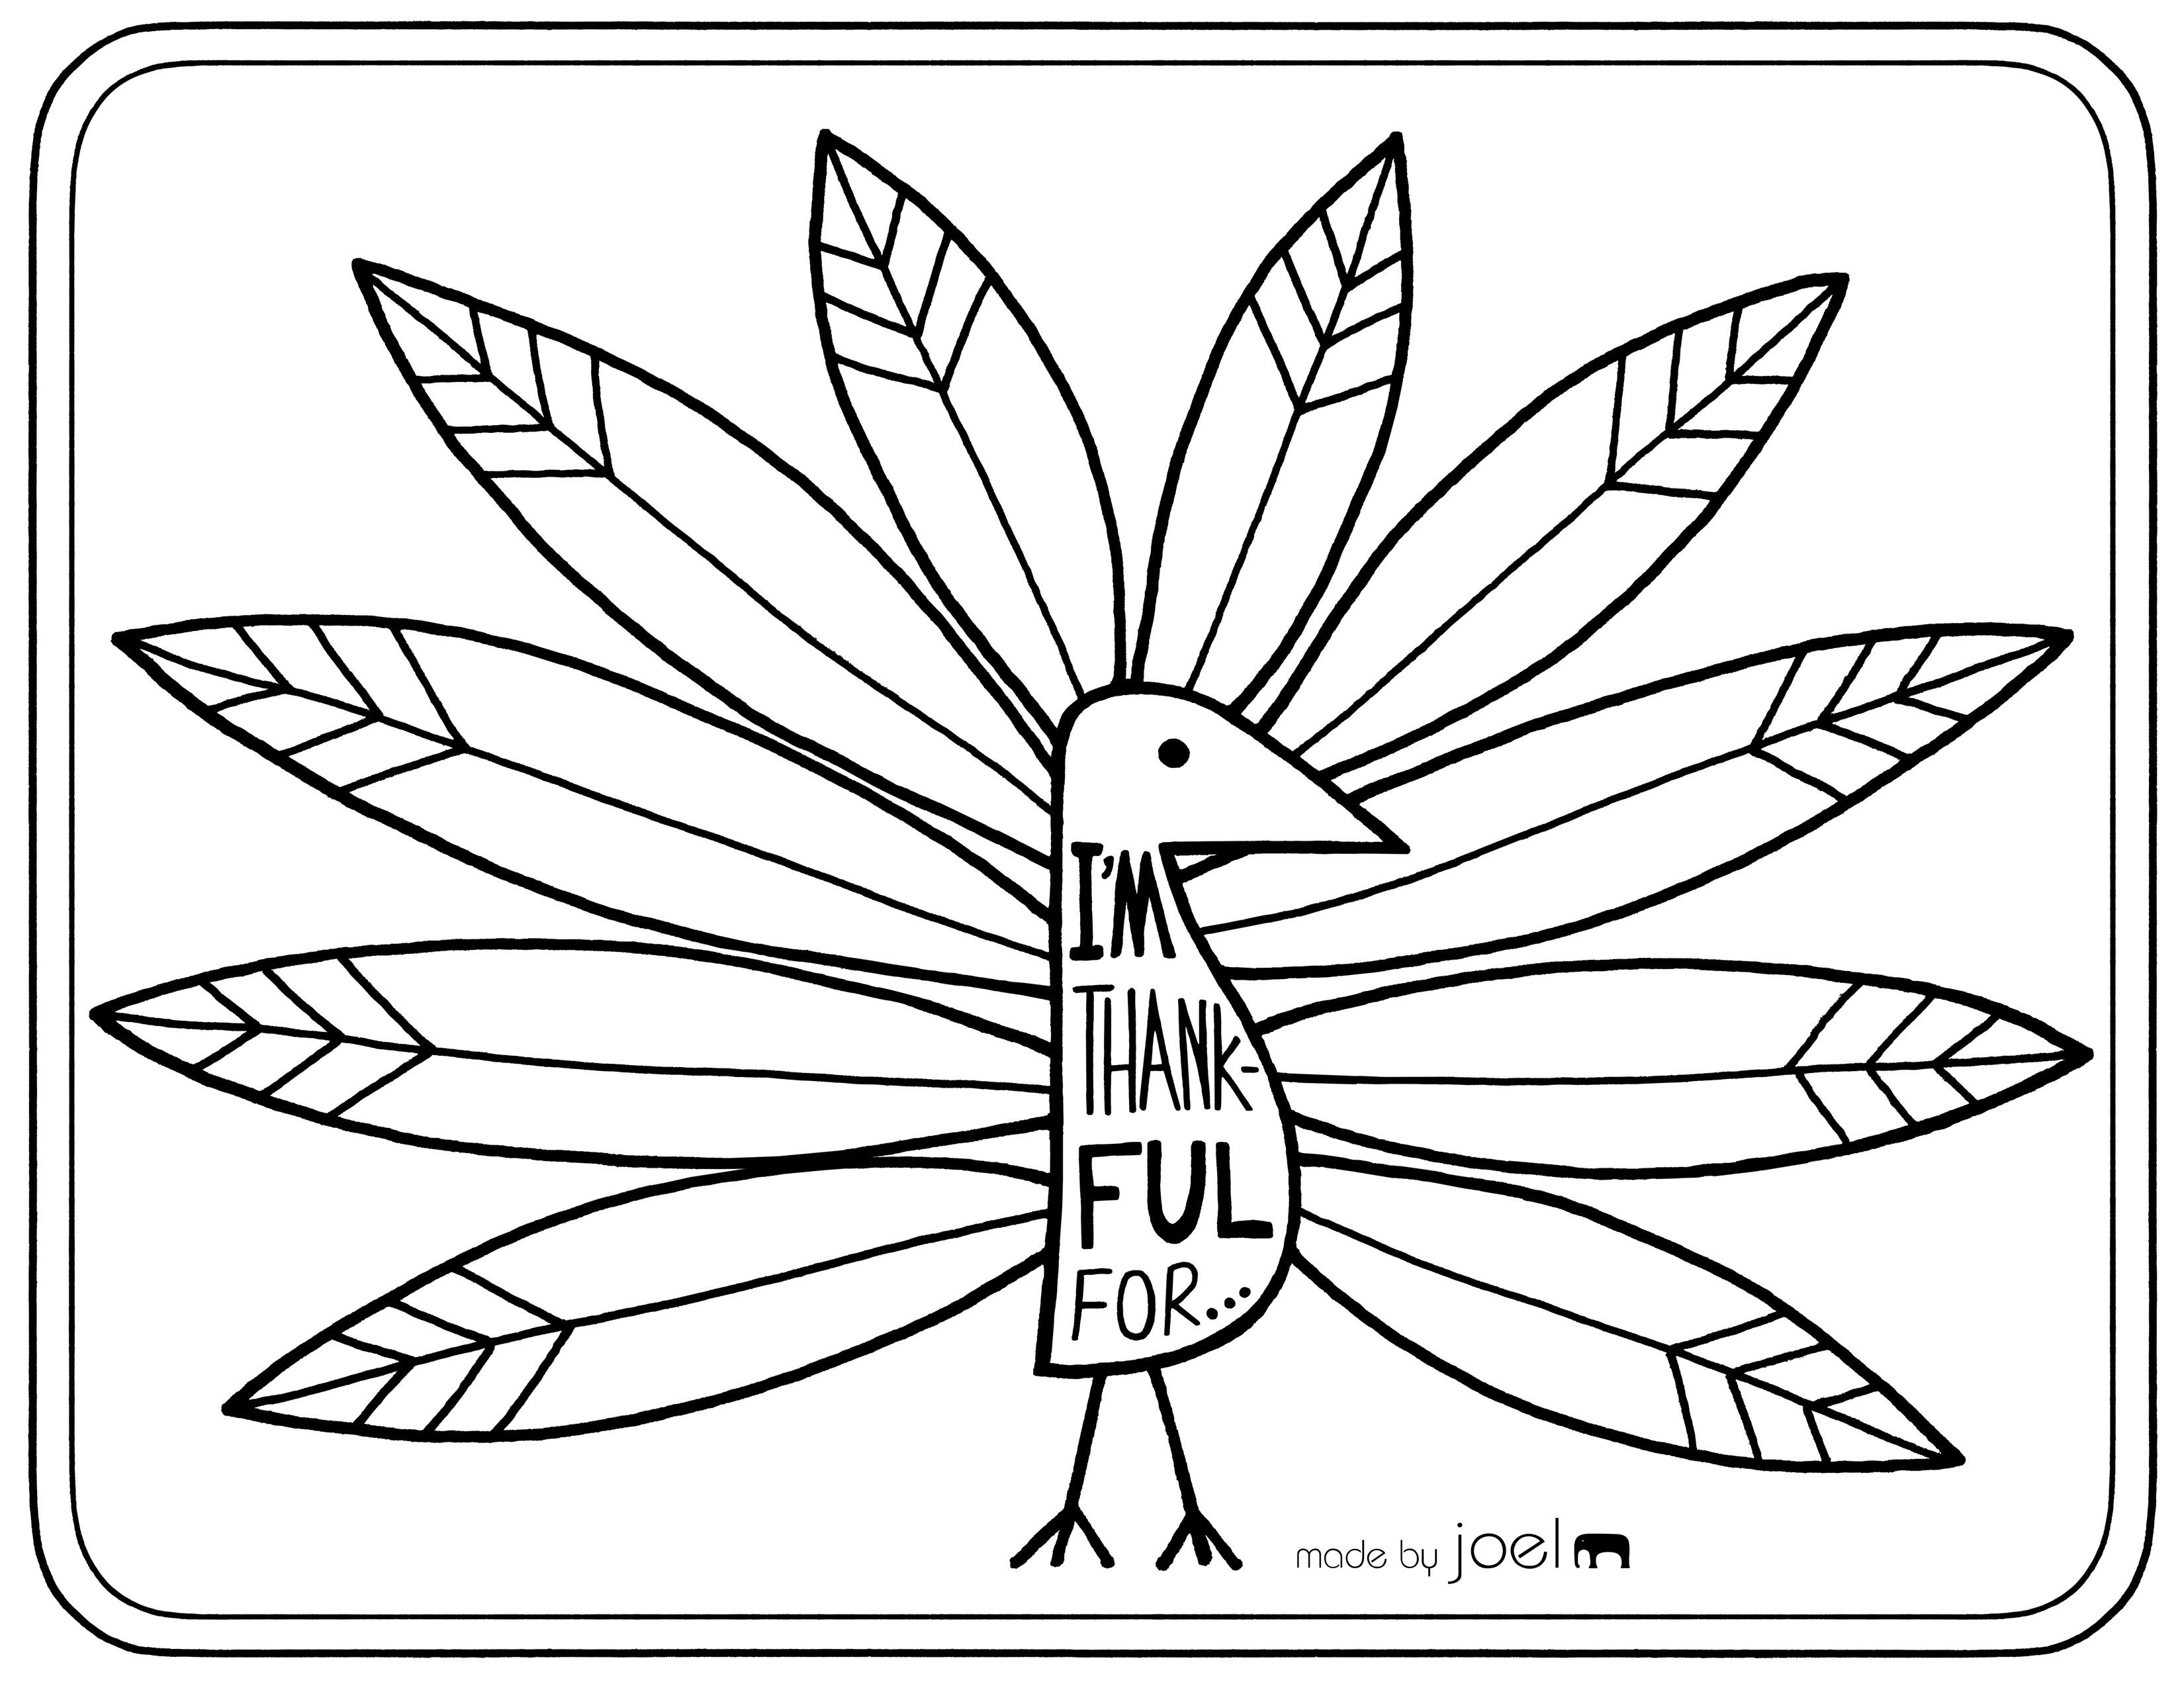 Free Printable Placemat For Giving Thanks